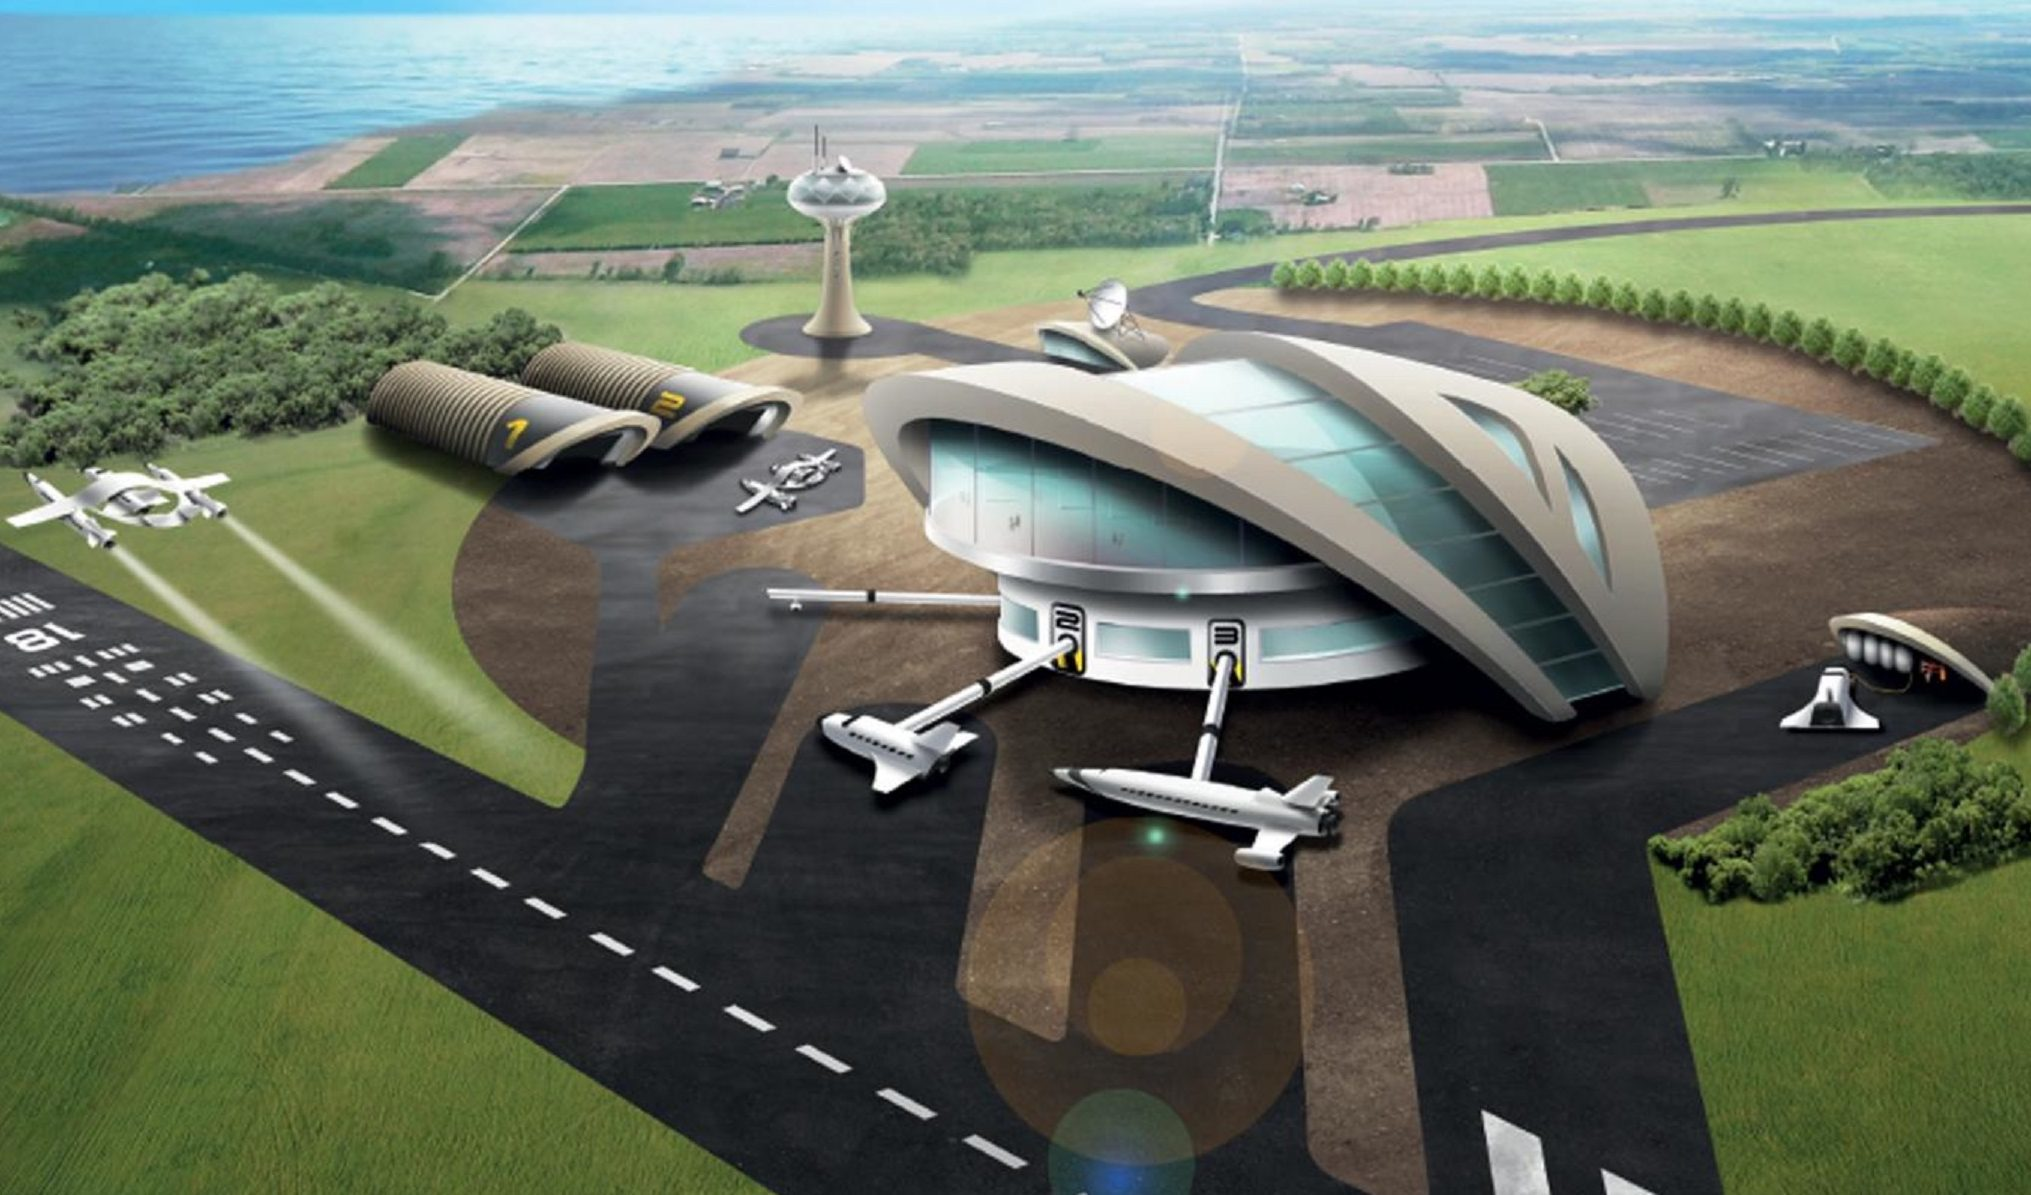 A vision of the Leuchars spaceport